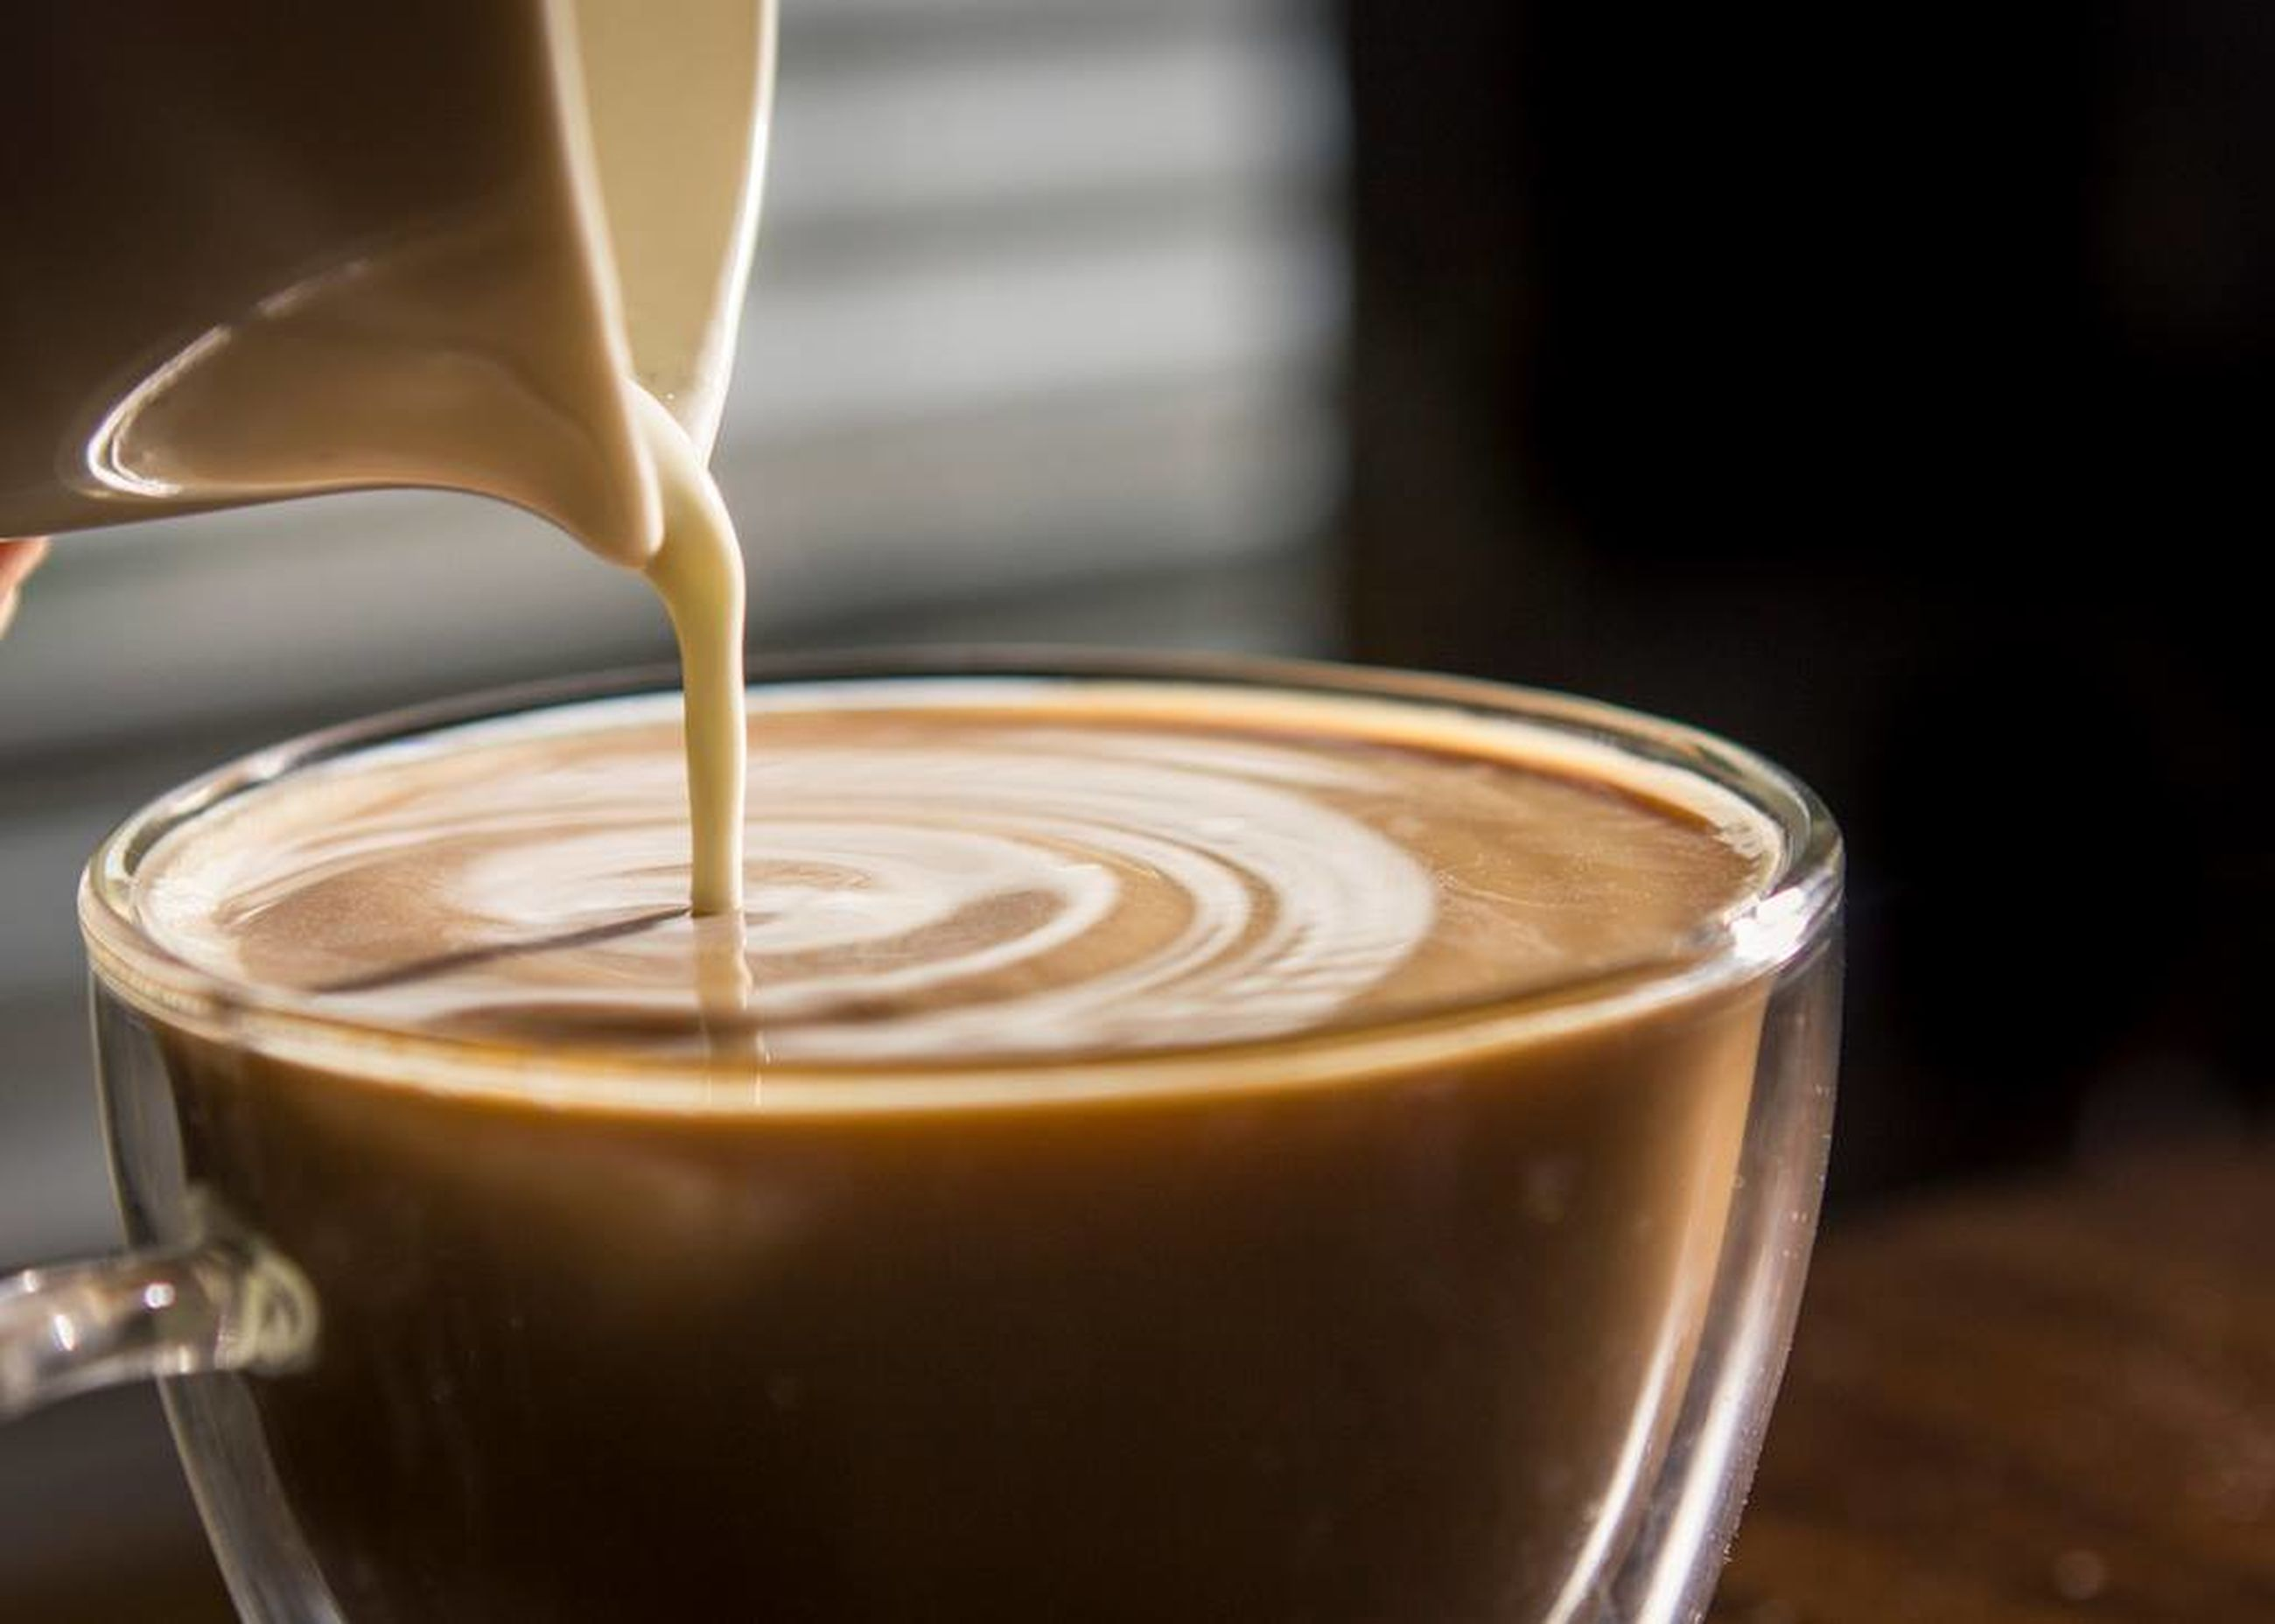 food and drink, drink, refreshment, coffee - drink, freshness, coffee cup, indoors, frothy drink, close-up, still life, table, healthy eating, non-alcoholic beverage, hot drink, beverage, selective focus, focus on foreground, making, serving size, food and drink industry